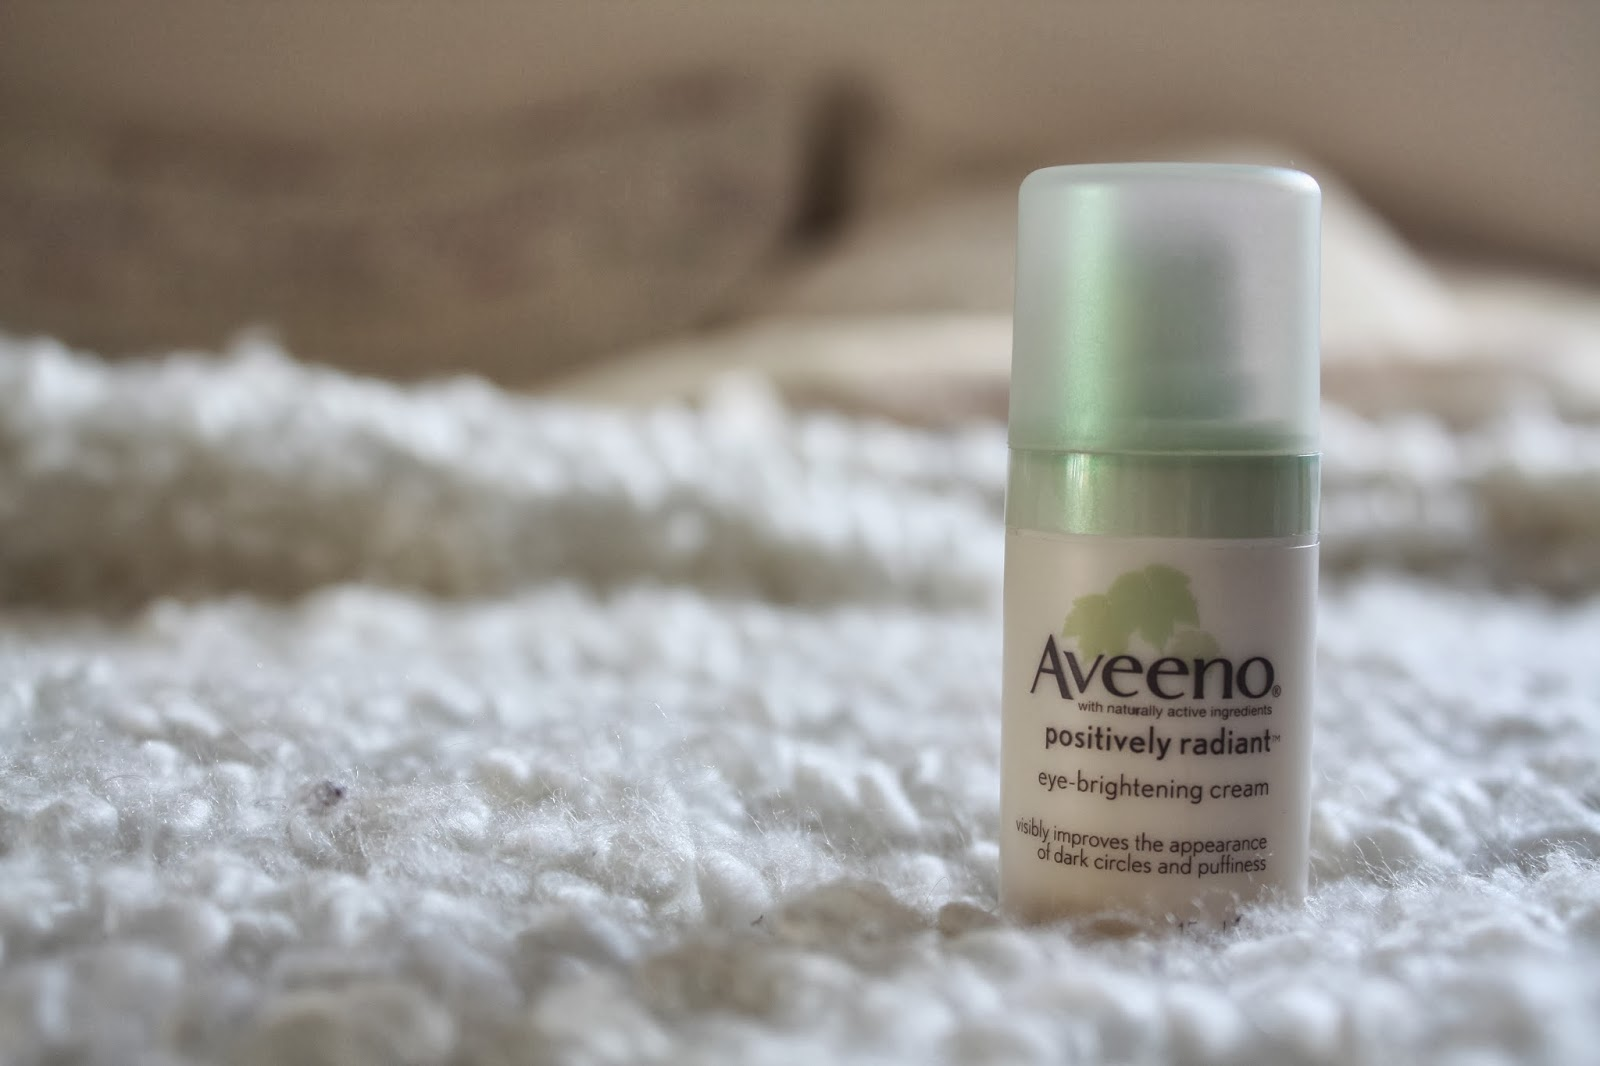 Aveeno Positively Radiant Eye Brightening Cream